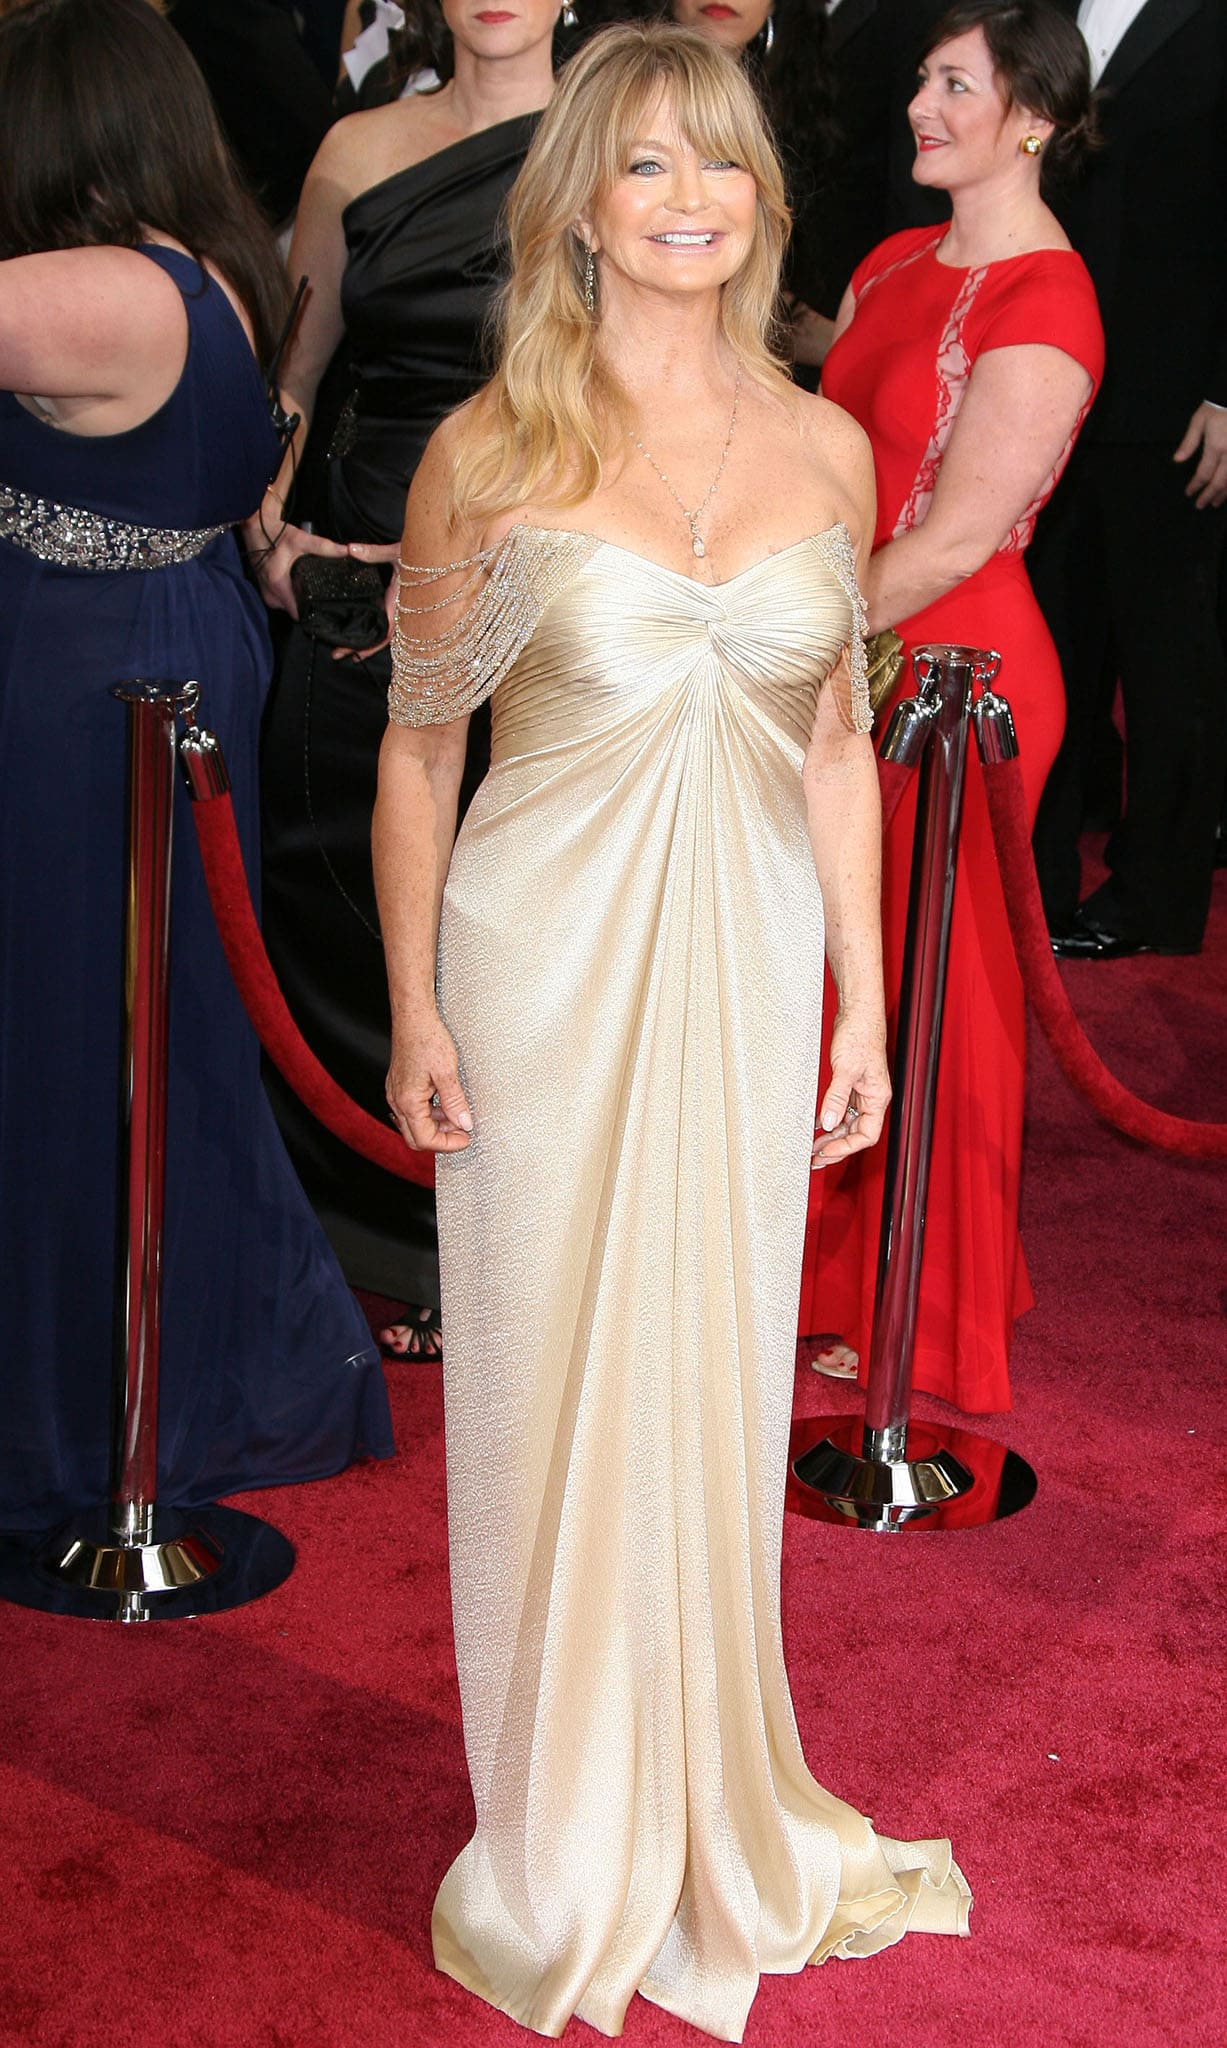 Goldie Hawn sparks plastic surgery rumors at the 86th annual Academy Awards